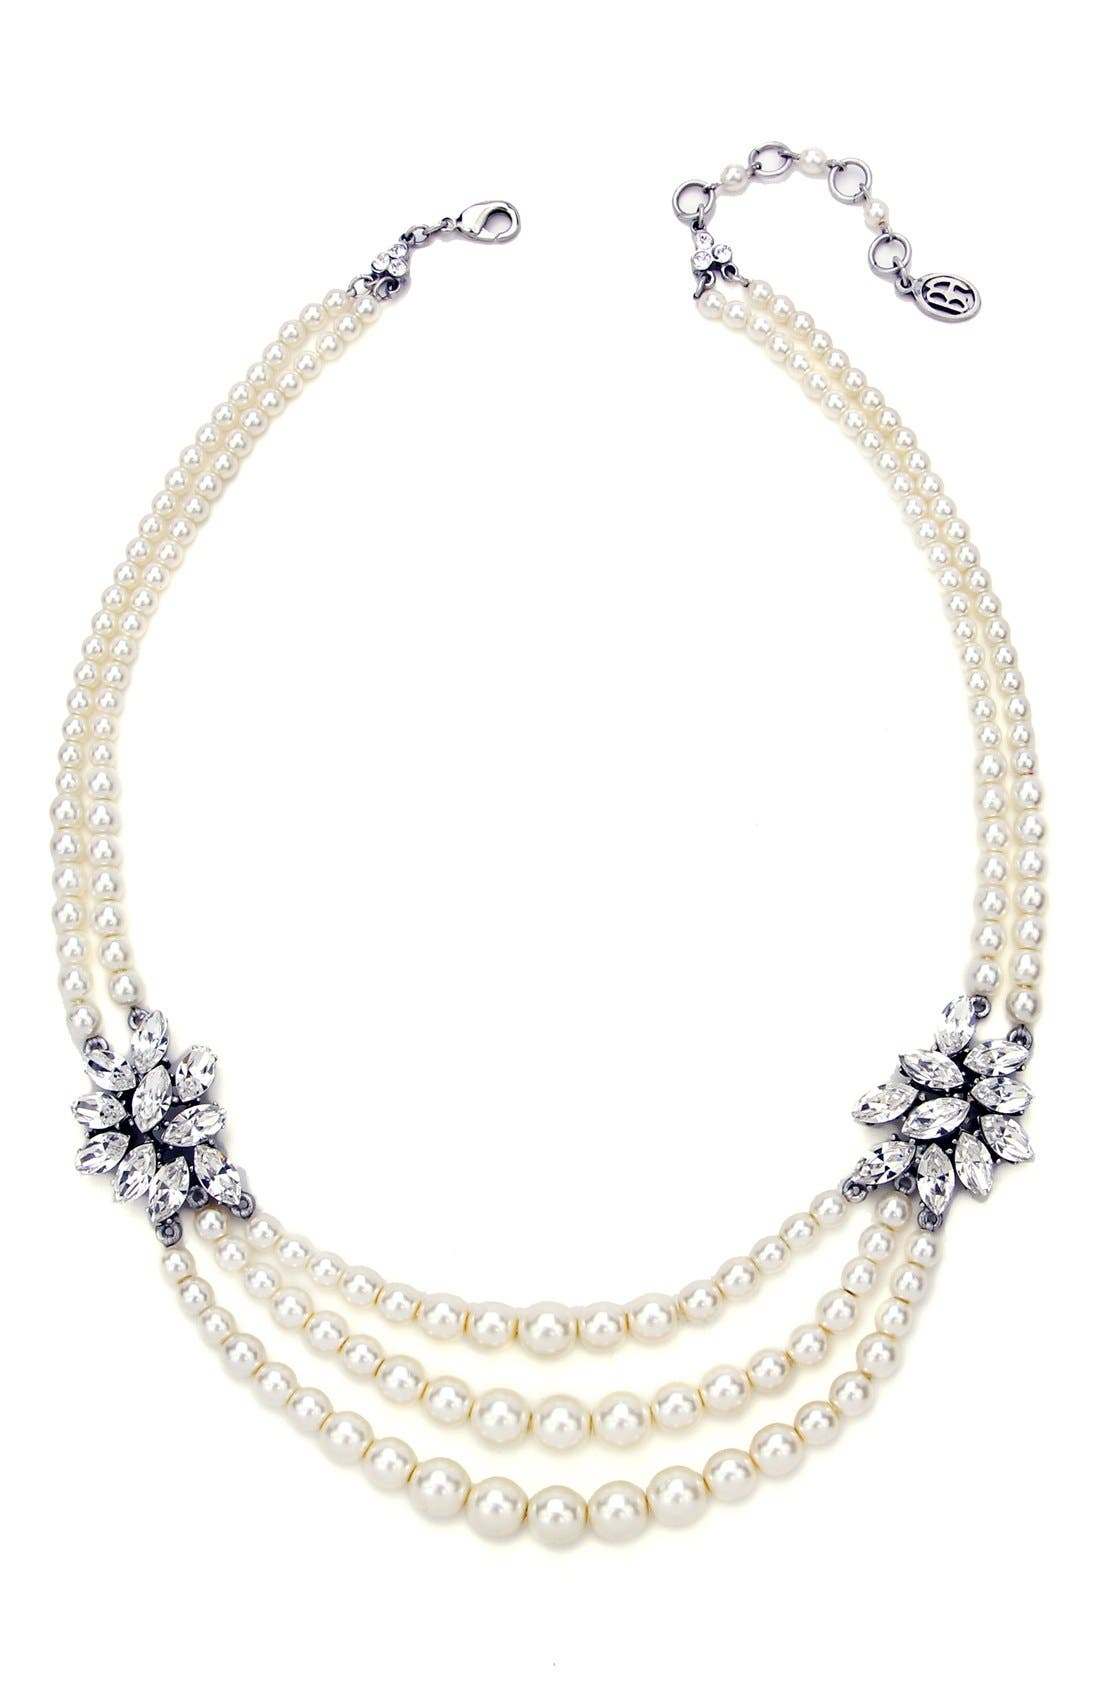 BEN-AMUN, Faux Pearl & Crystal Multistrand Necklace, Main thumbnail 1, color, IVORY/ CLEAR